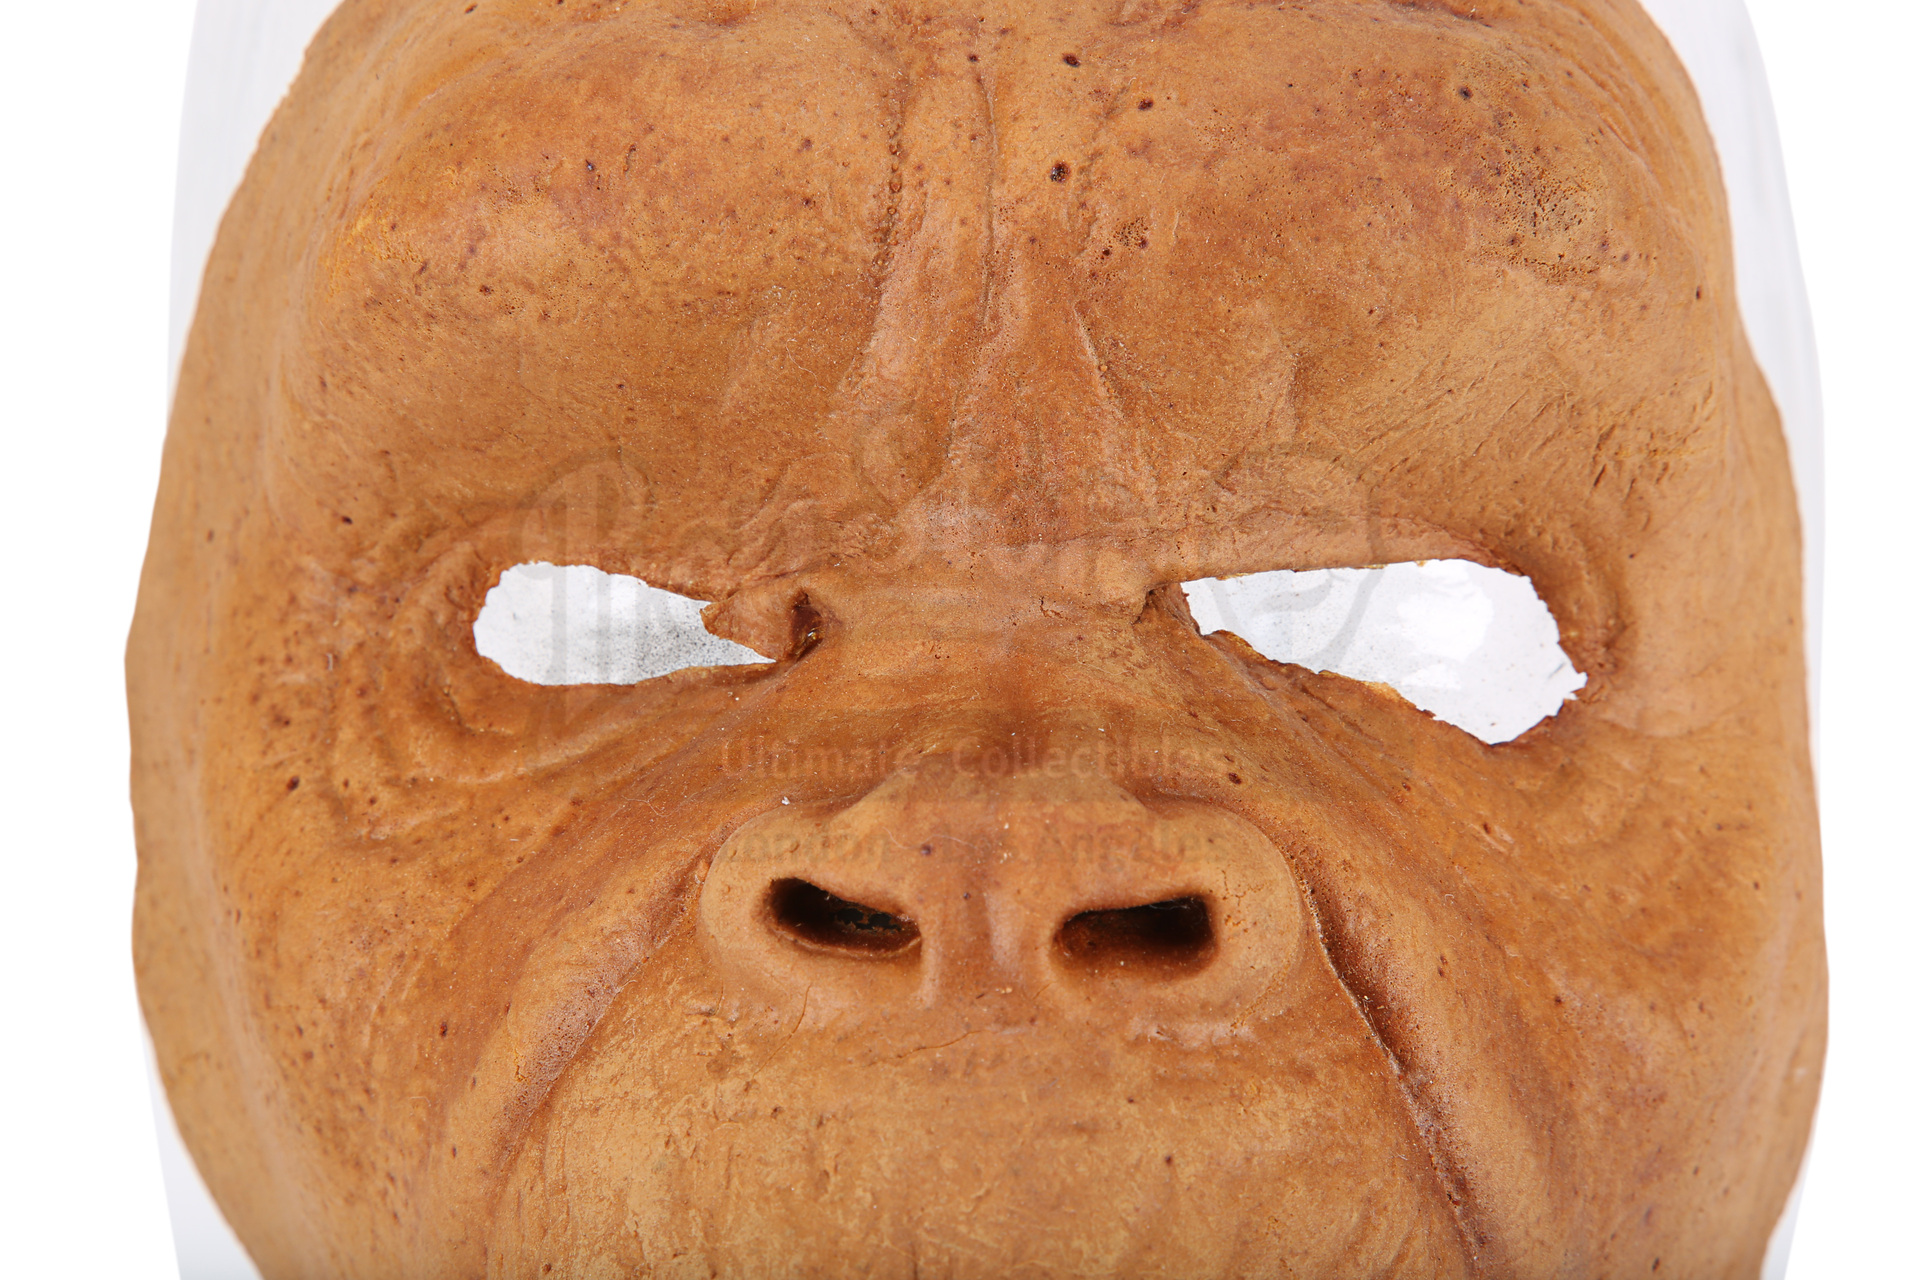 2001: A SPACE ODYSSEY (1968) - Dawn of Man Ape Mask - Image 7 of 12